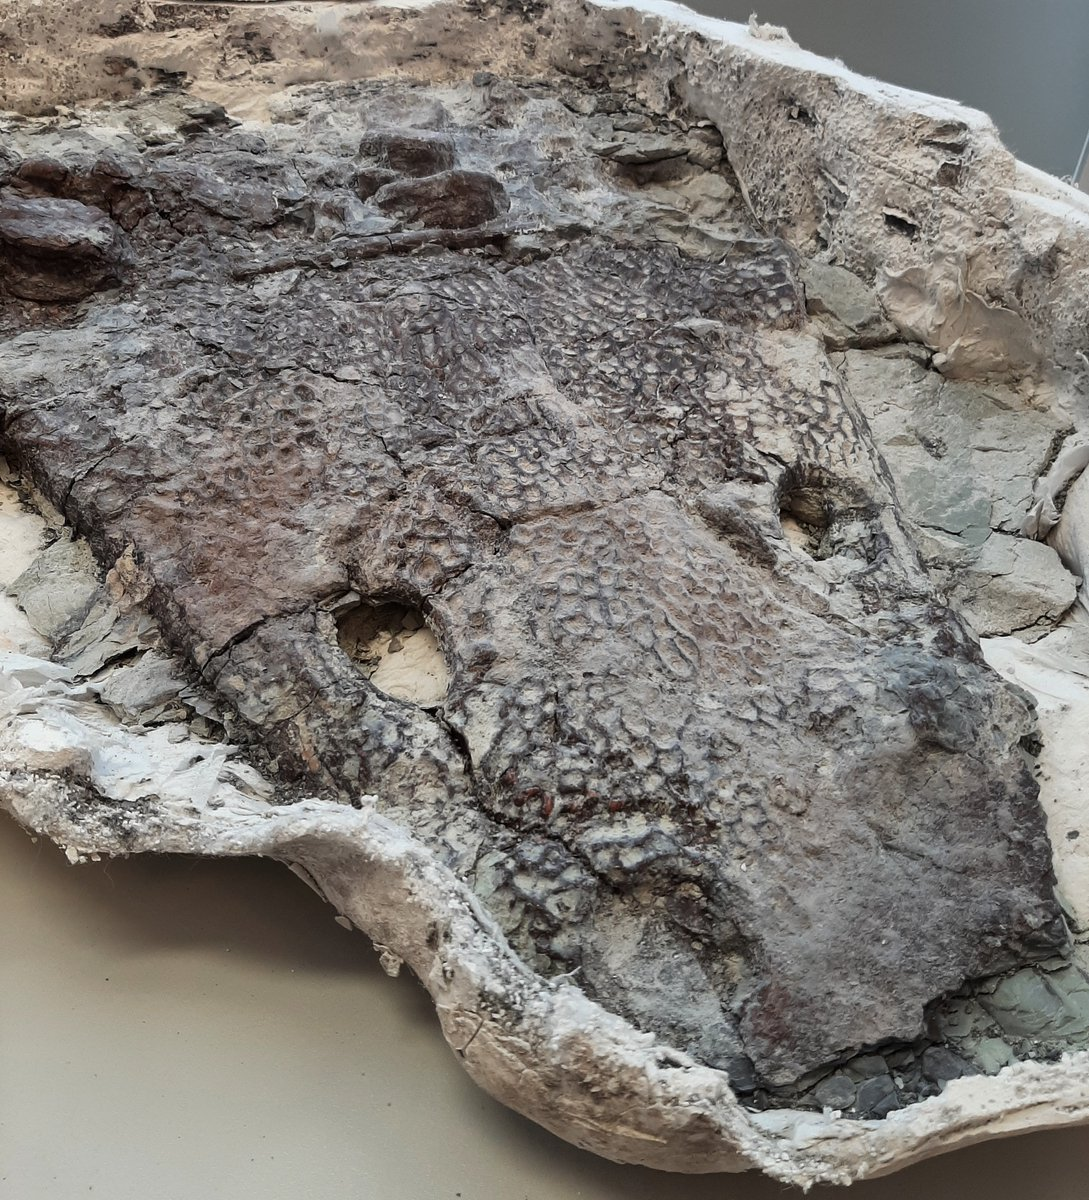 Fossil preparators have been removing rock from the skull & vertebrae of a 223 million-year-old amphibian called Anaschisma browni. Visit the Museum Demo Lab at the Painted Desert Visitors Center to gaze into the eyes of the past for yourself. (db) #fossilfriday #npspaleo #eyes